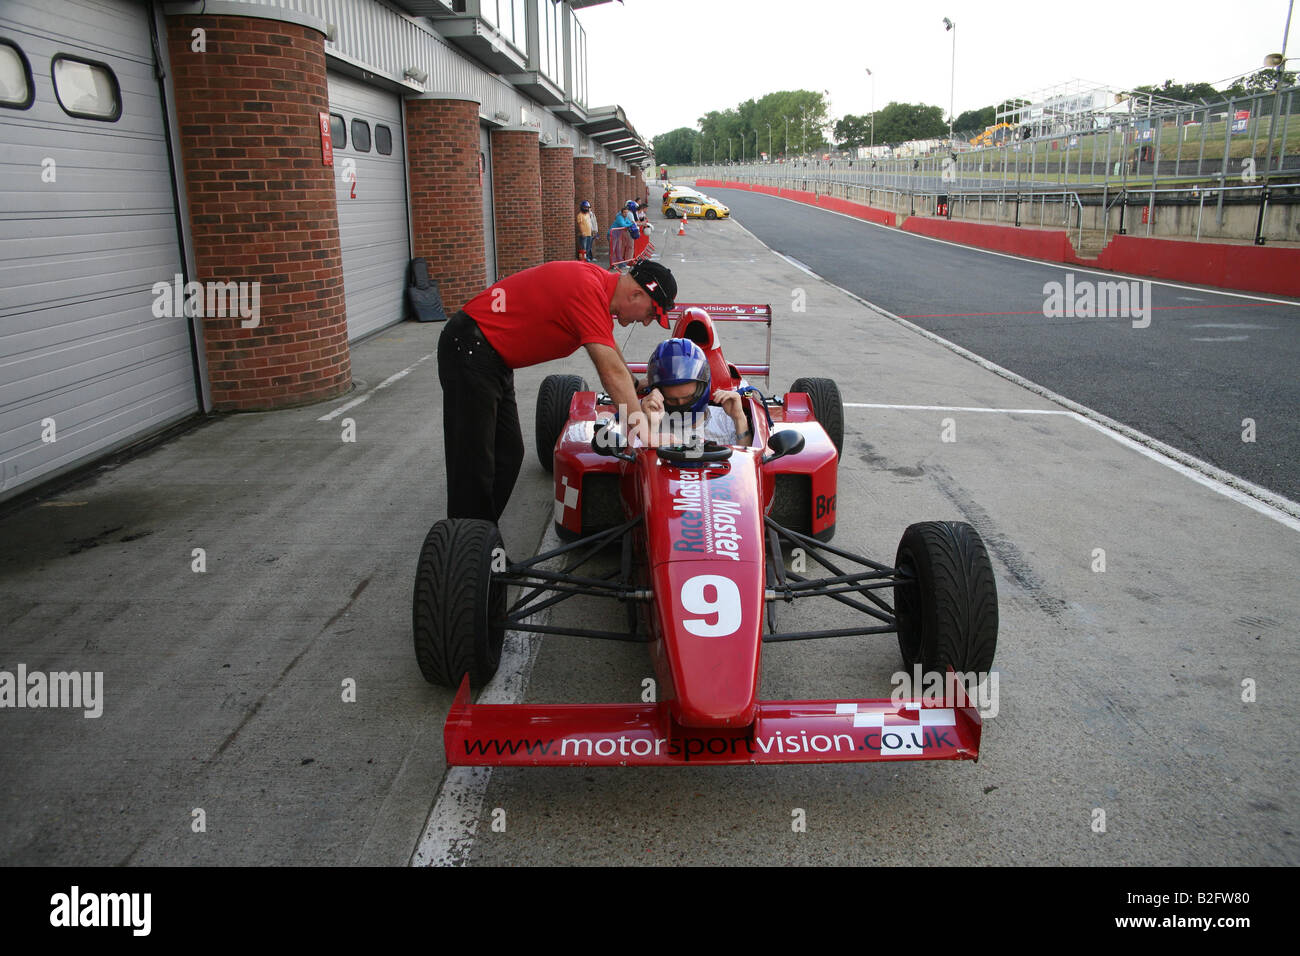 Man sitting in a racing car at Brands Hatch - Stock Image